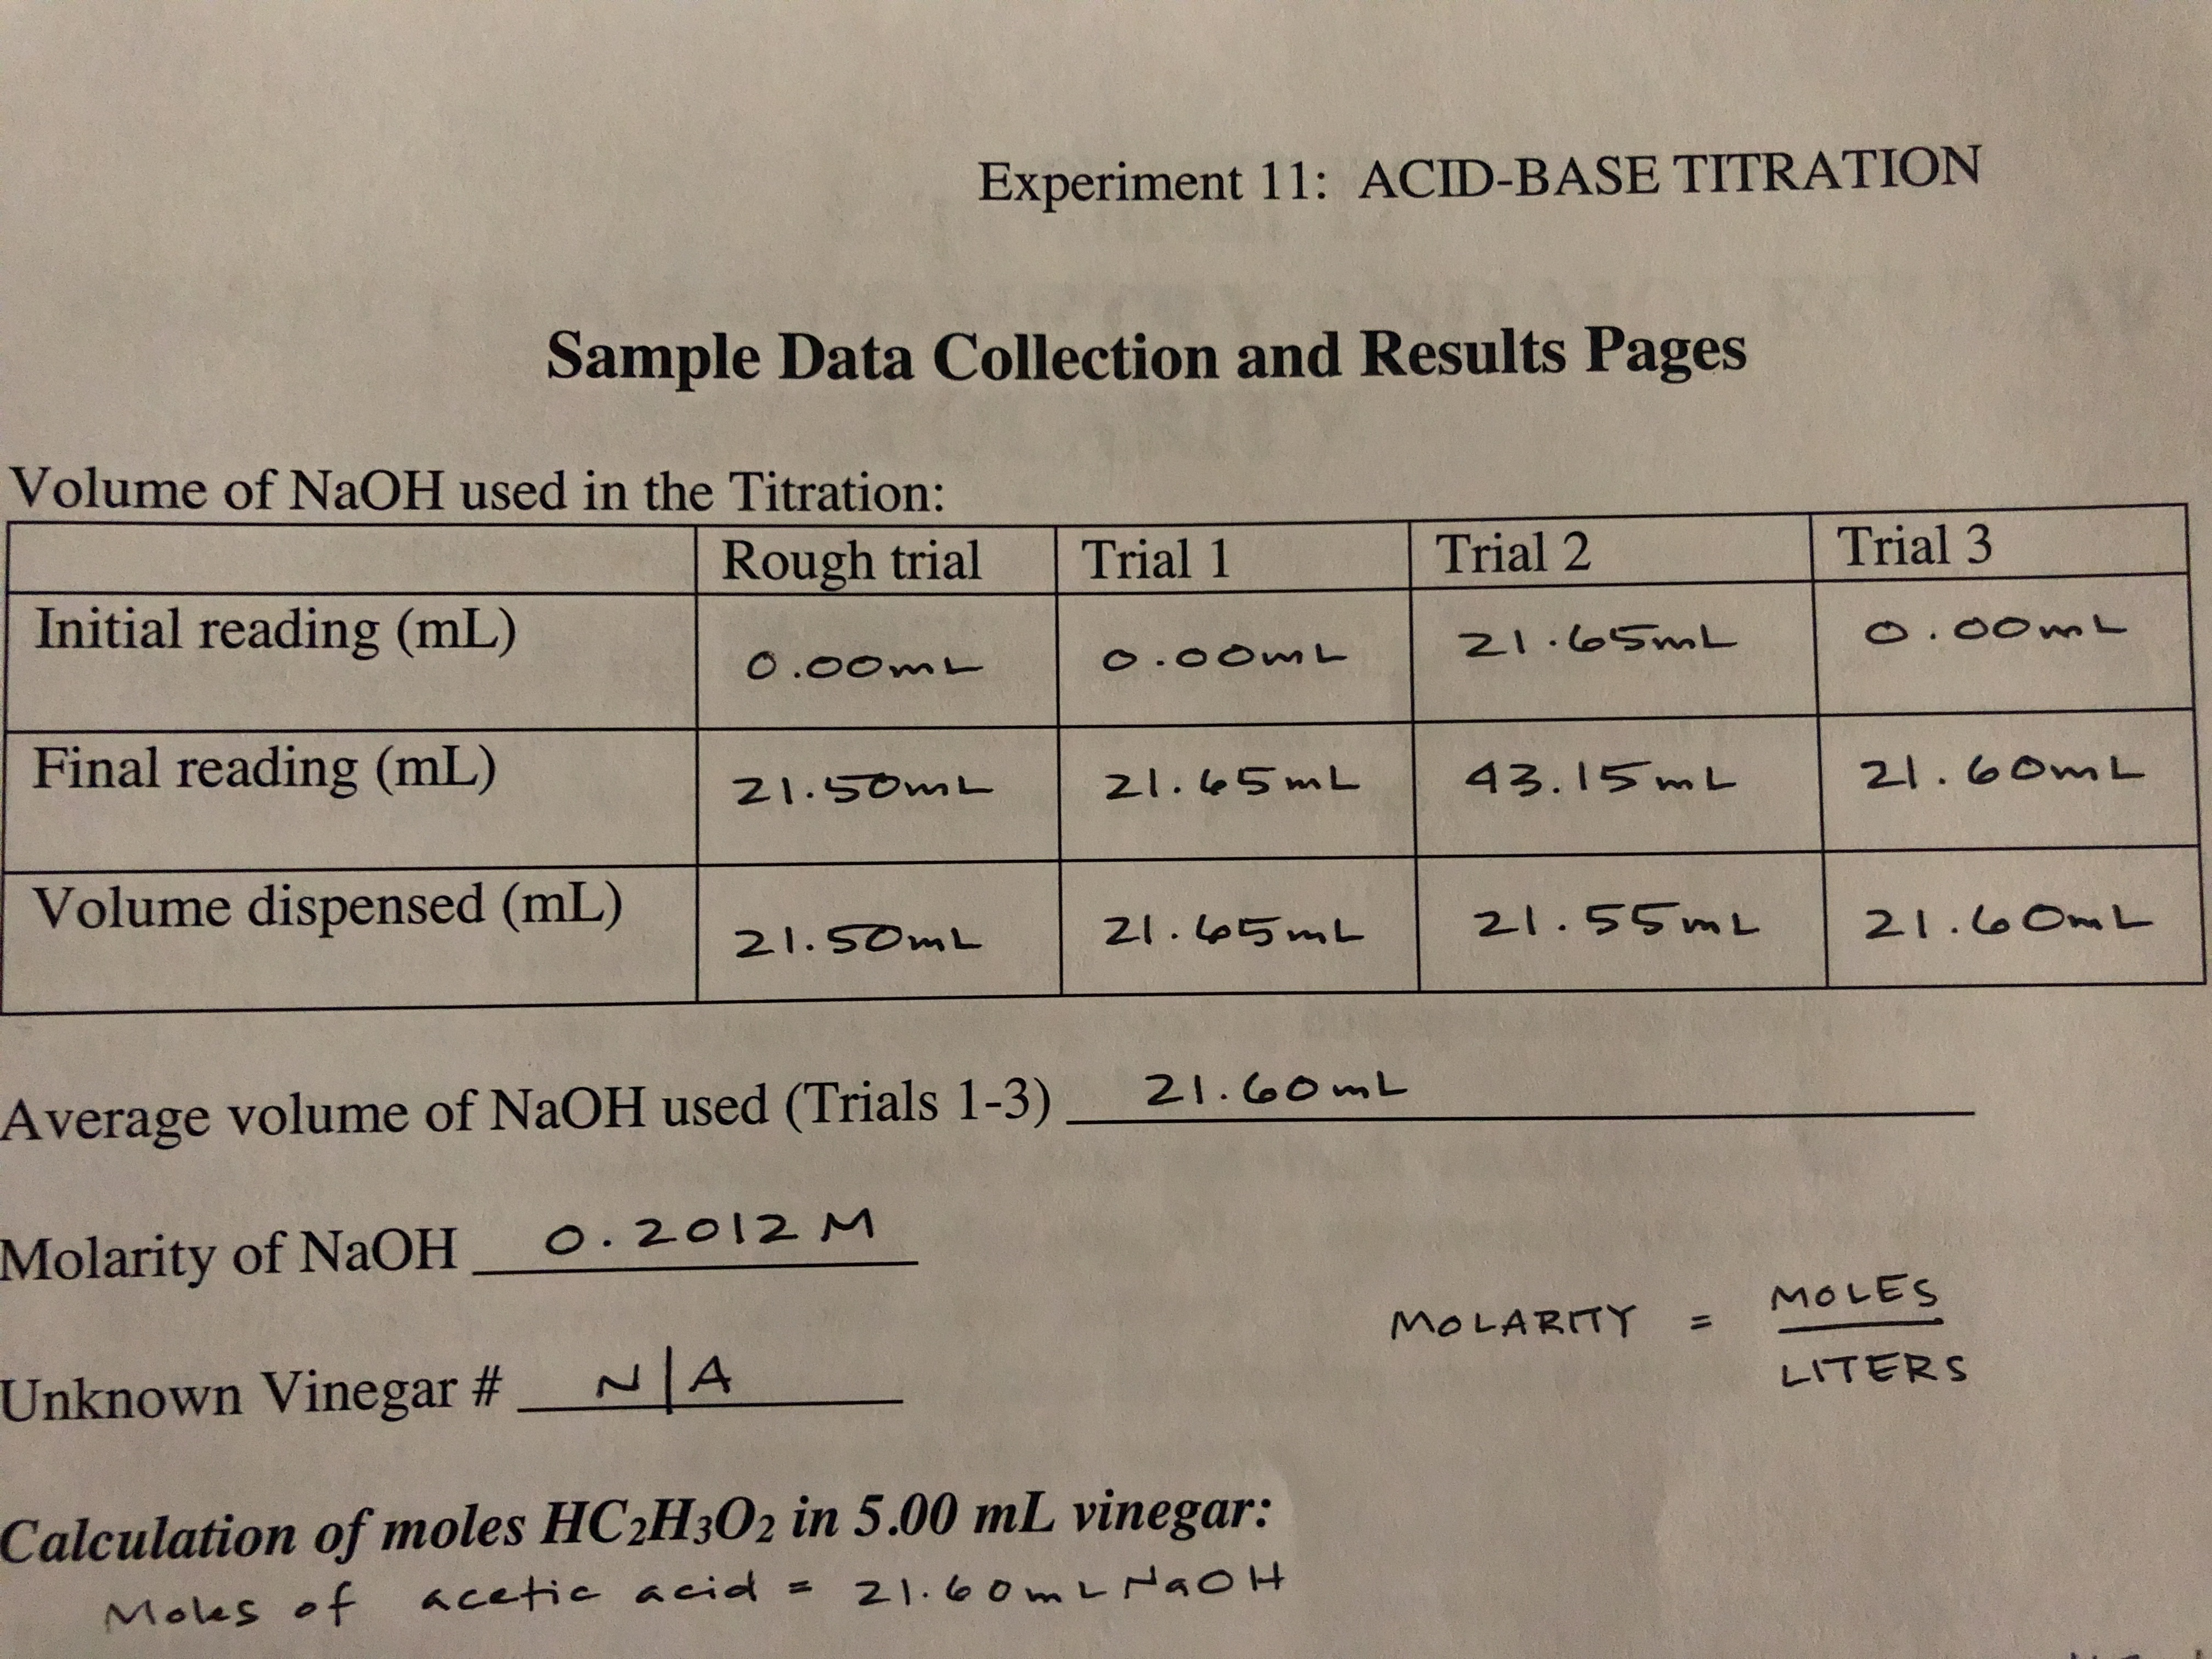 Experiment 11: ACID-BASE TITRATION Sample Data Collection and Results Pages Volume of NaOH used in the Titration: Rough trial Trial 3 Trial 1 Trial 2 Initial reading (mL) o.00mL Z1.0SmL O .0om o.00ML Final reading (mL) 43.15 mL Z1.50mL 21.6om L z1.45ML Volume dispensed (mL) 21.55ML ZI. L5mL 21.5OML 21.o0OmL 21.6omL Average volume of NaOH used (Trials 1-3) O. 2012 M Molarity of NaOH MOLES MOLARITY = Unknown Vinegar #_N A LITERS Calculation of moles HC2H3O2 in 5.00 mL vinegar: acetie acid =21. o om Ha0H Moles of